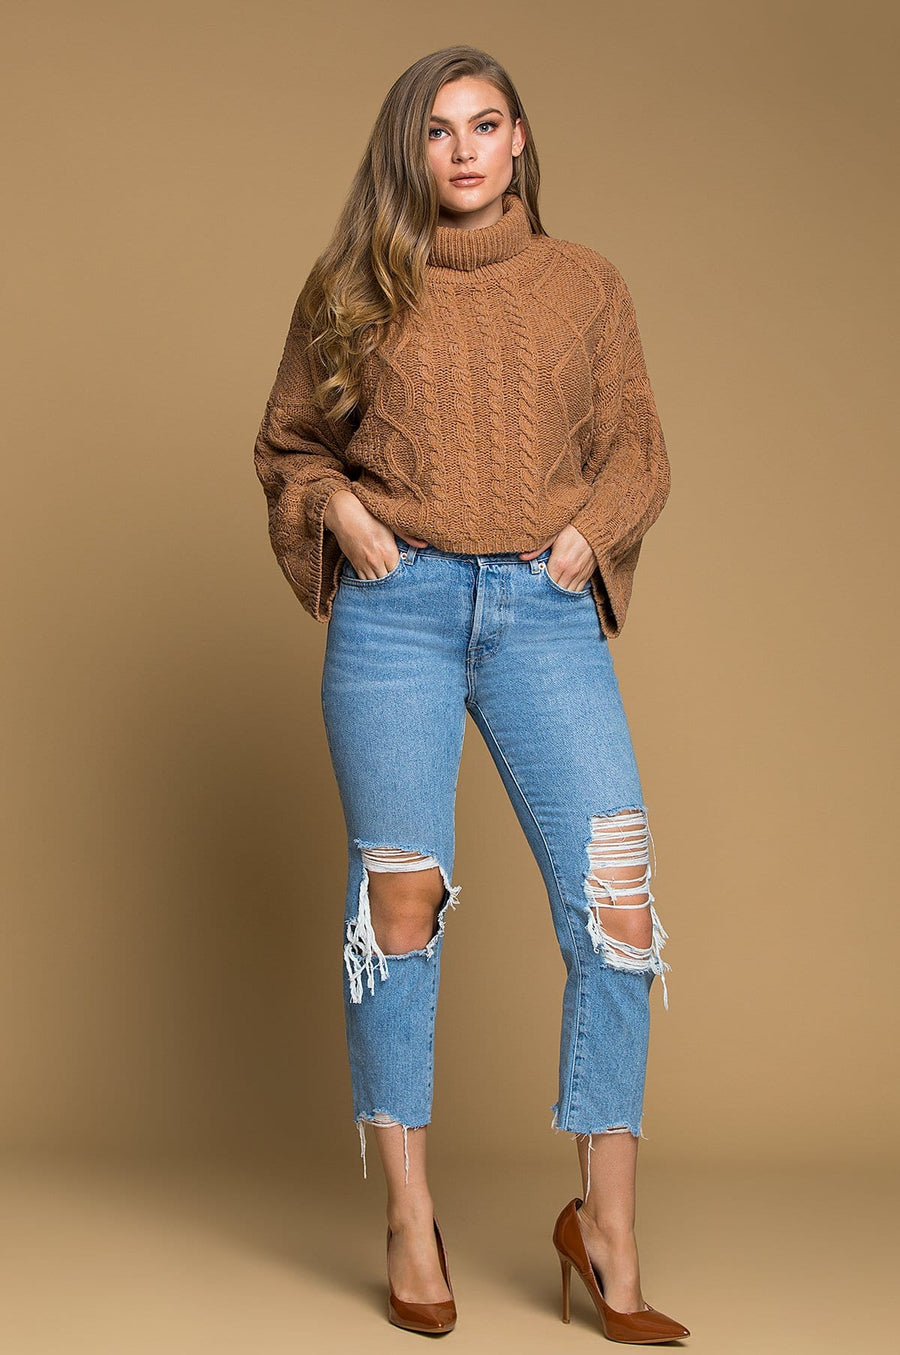 'Karter' Cropped Sweater